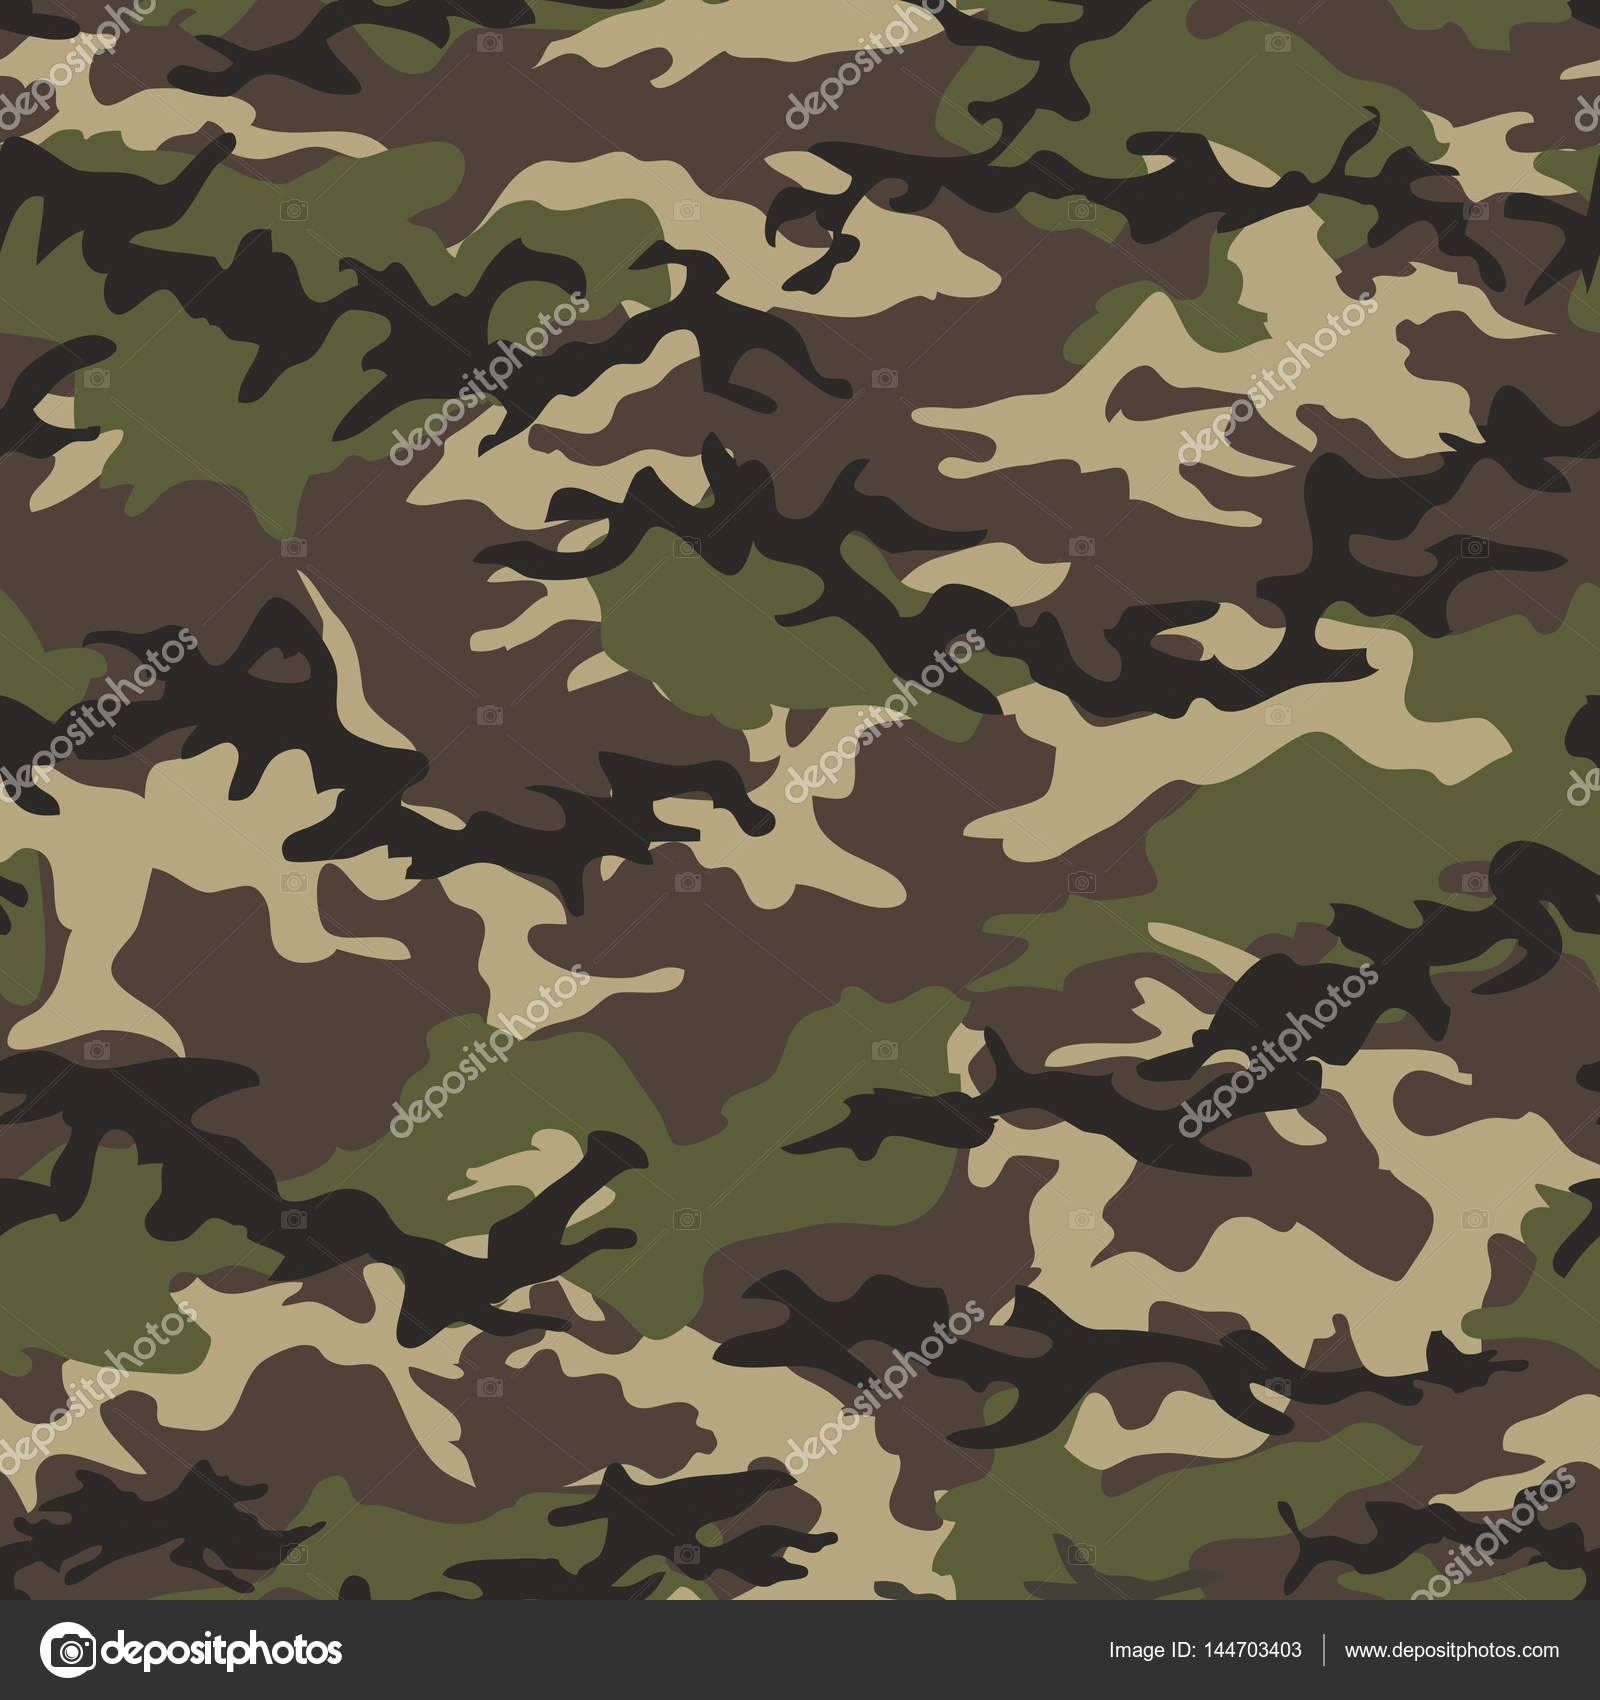 Camouflage seamless woodland pattern background. Military camouflage pattern. Fashionable camouflage textile. Military print. Seamless vector wallpaper.